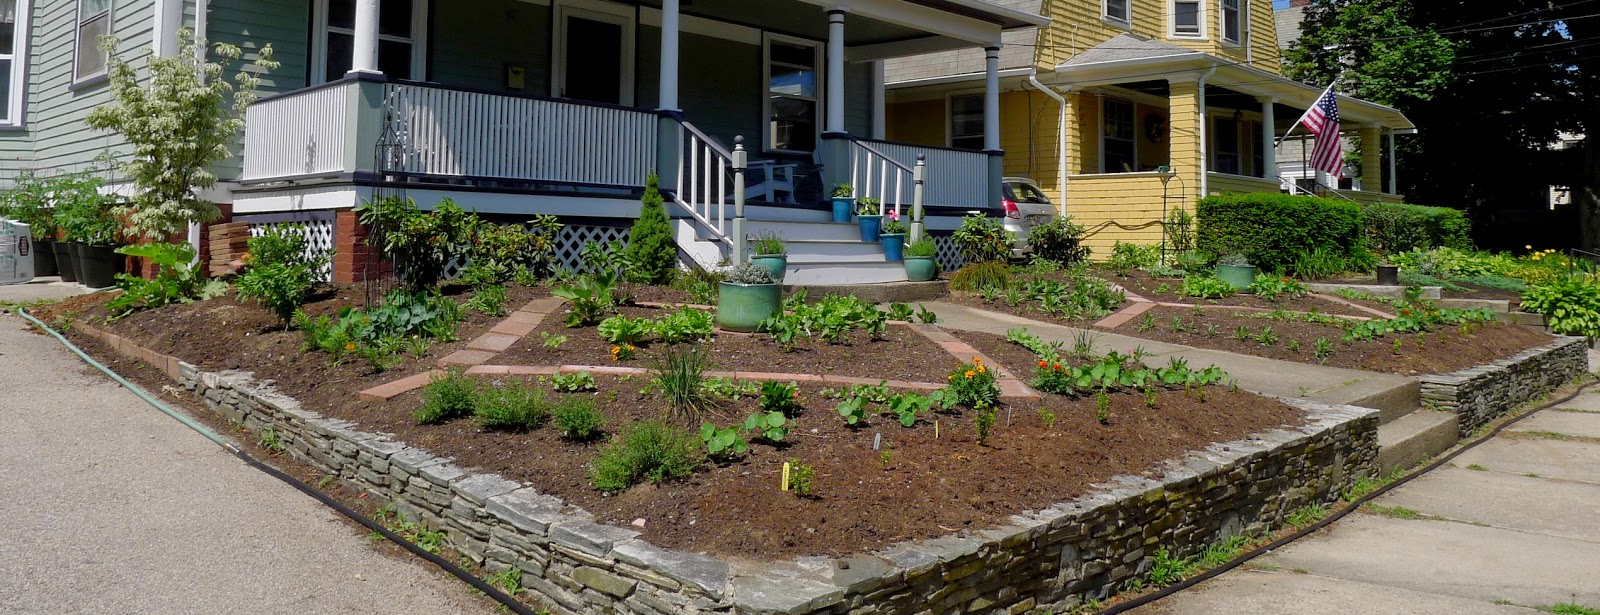 Less Noise, More Green Edible Landscaping Project, including vegetables in edible landscaping